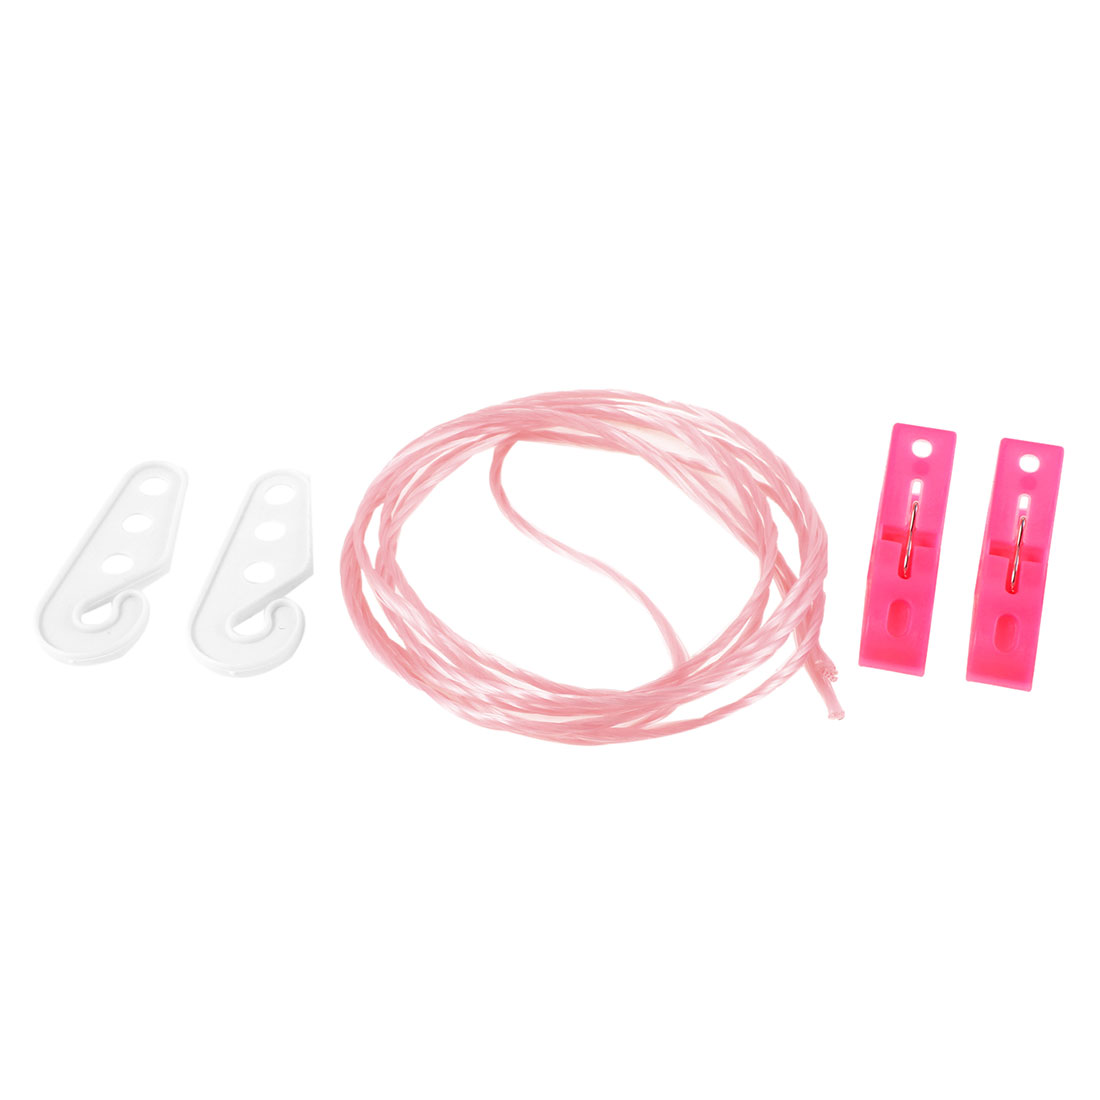 2M Long Pink Twisted Nylon String Clothes Line w 2 Pcs White Hook